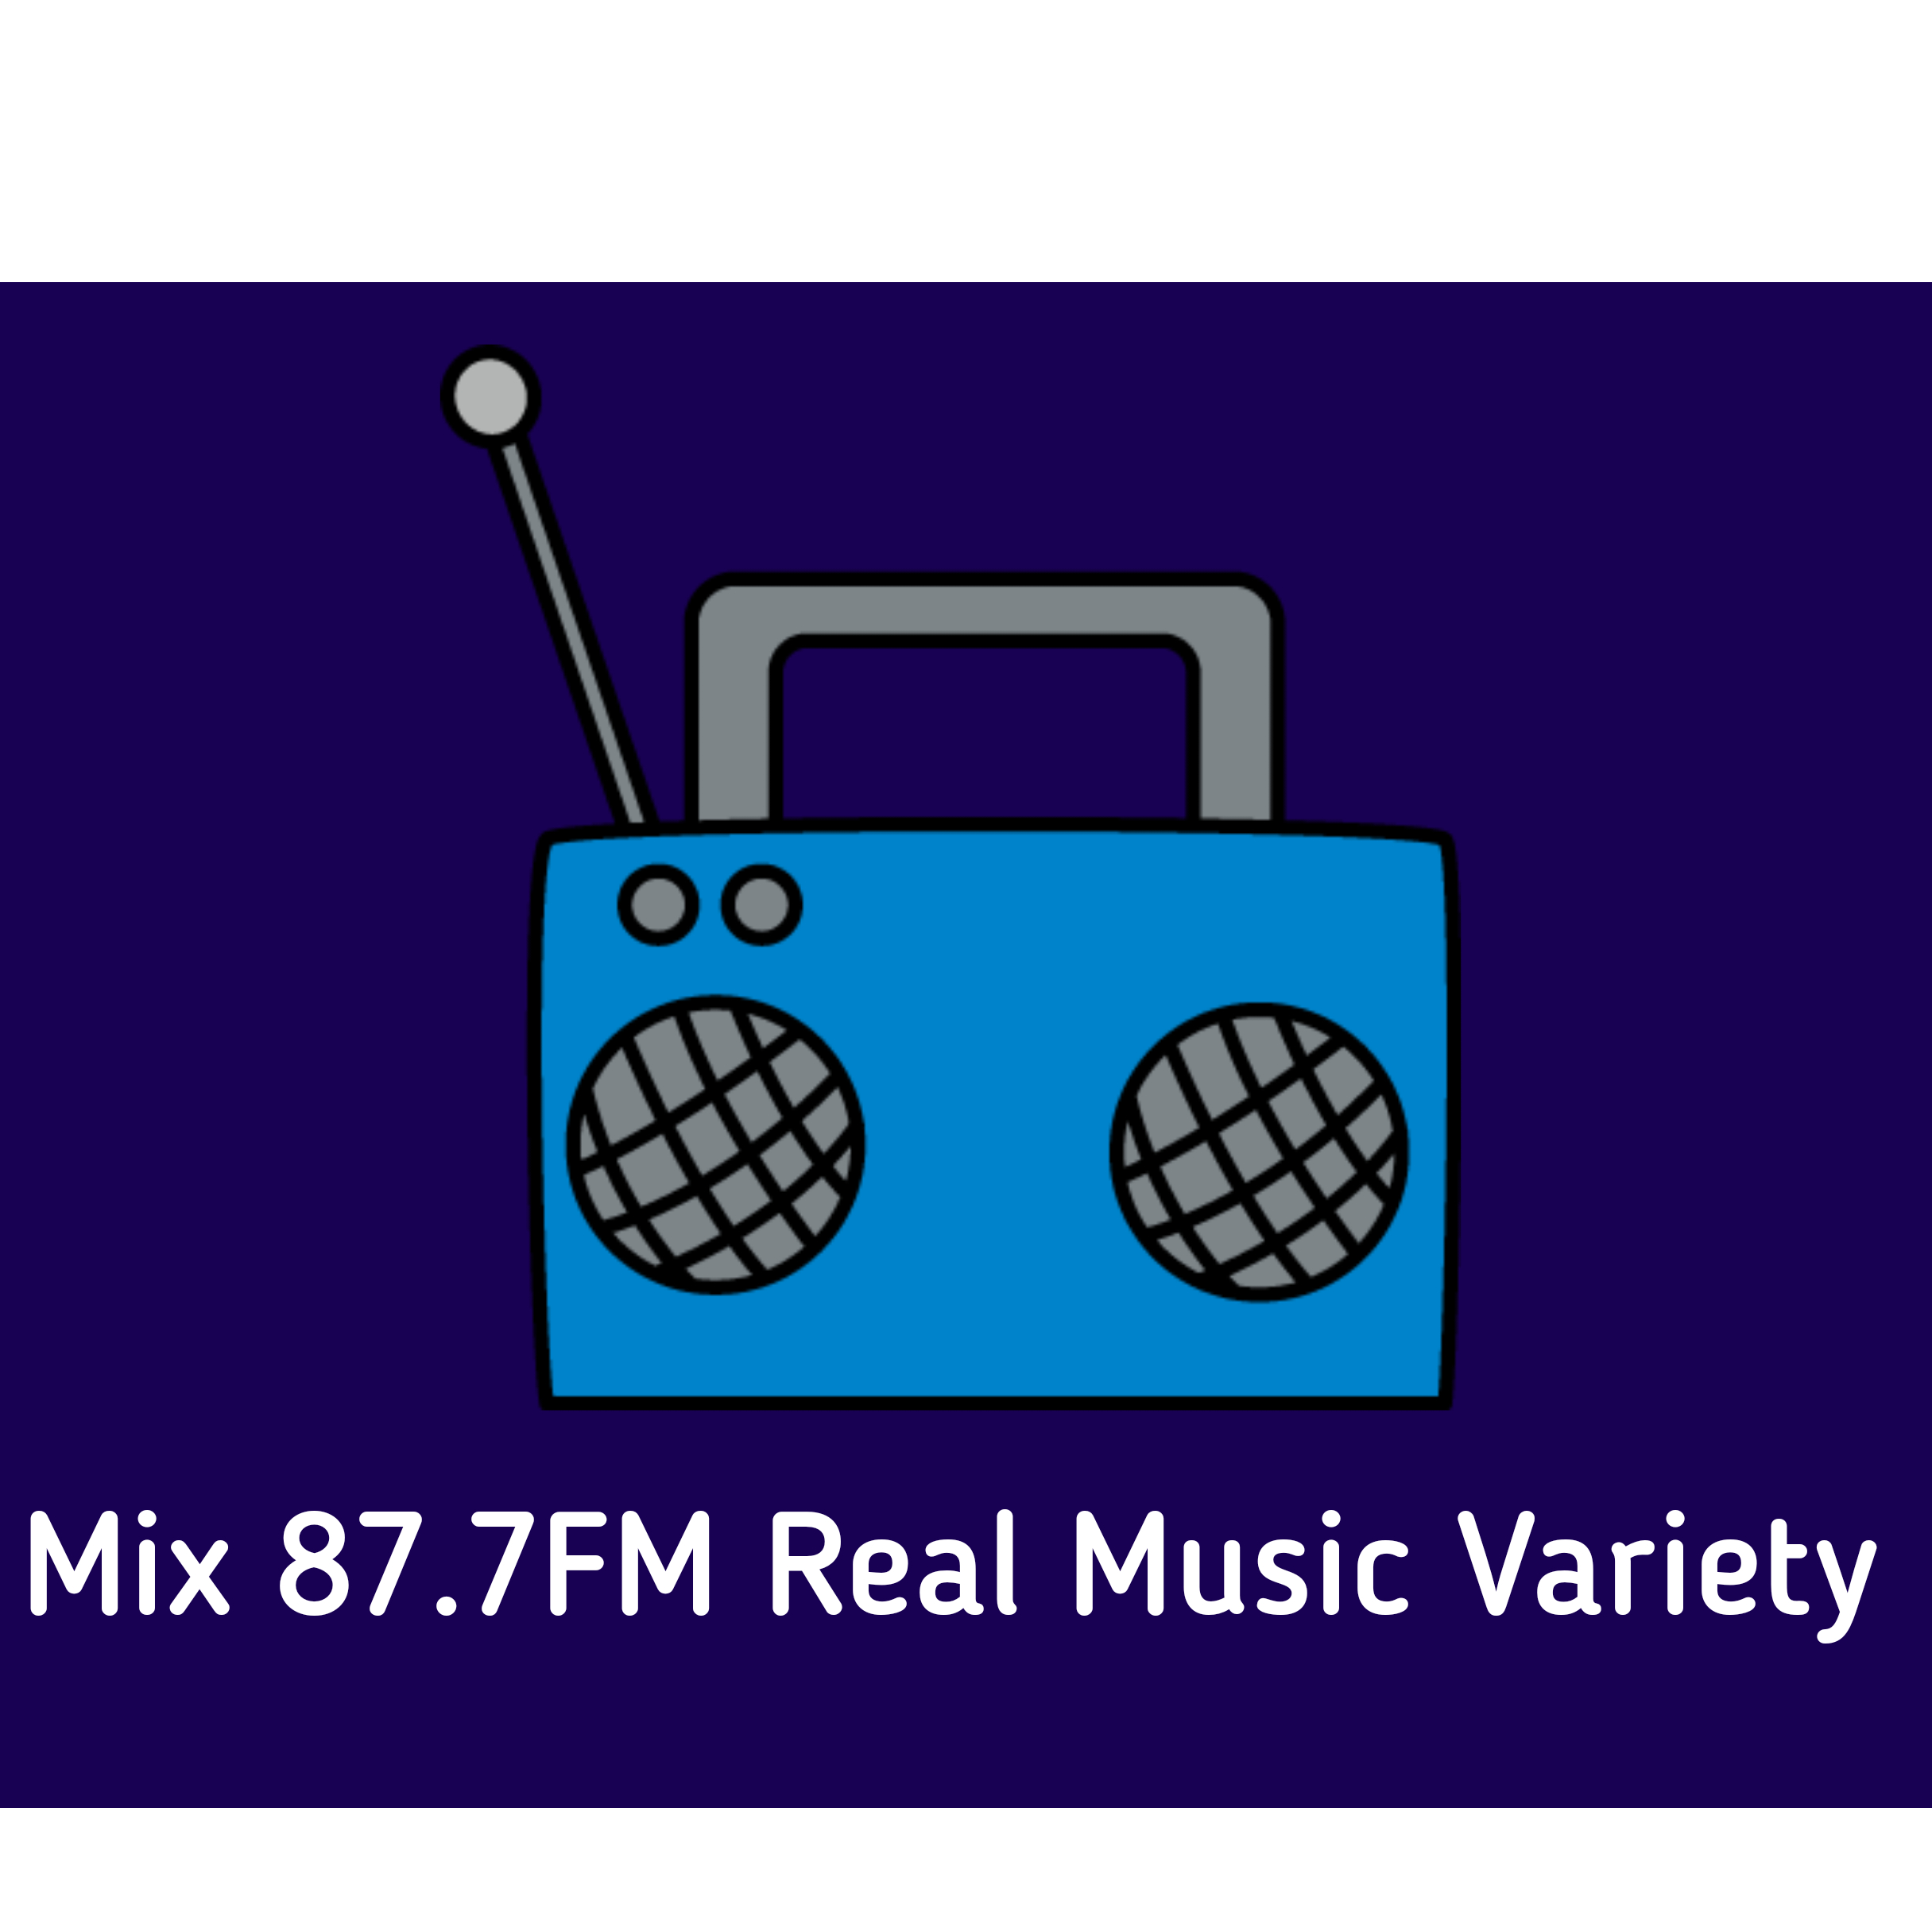 Mix 87.7FM Real Music Variety